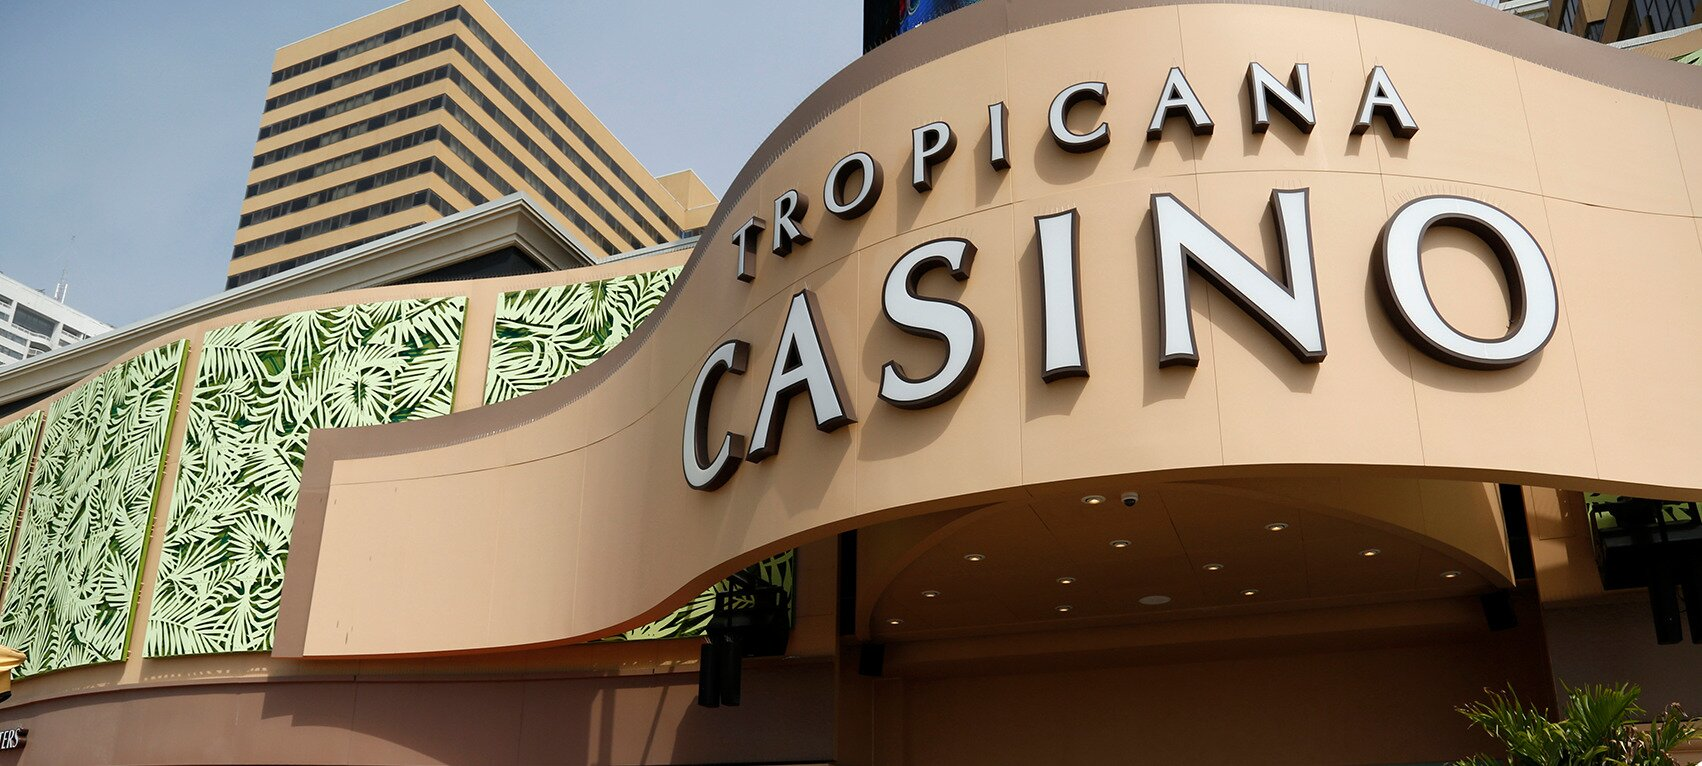 https://www.gambleonline.co/app/uploads/2021/02/tropicana-progressive-poker-jackpot.jpg